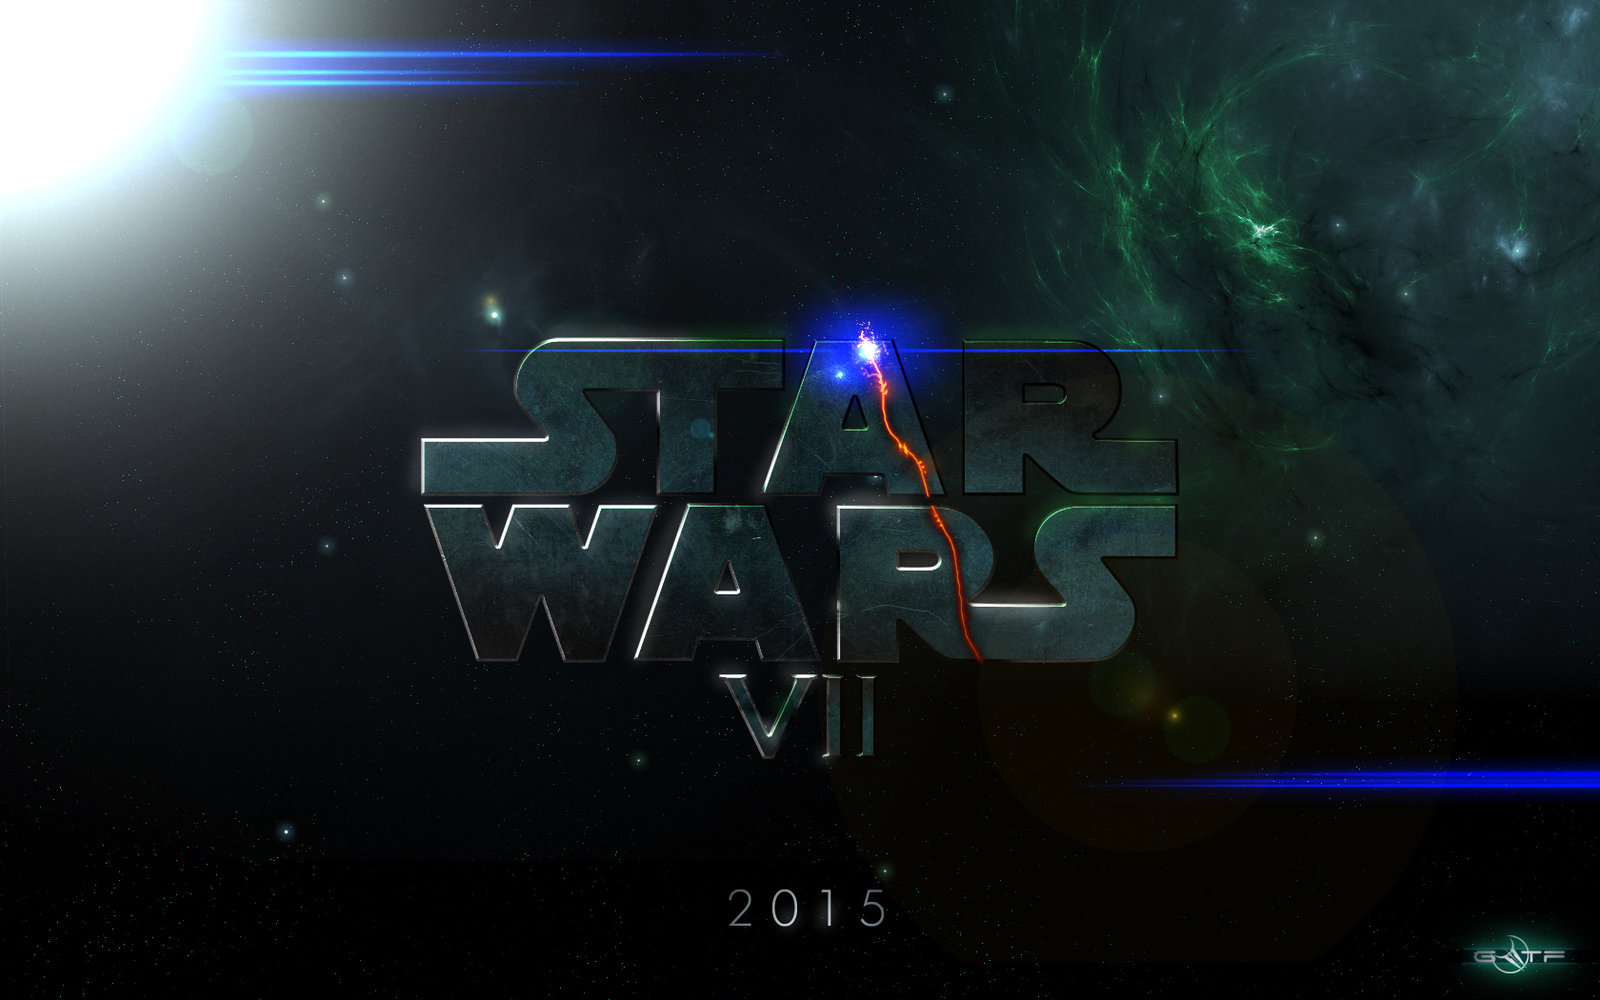 star wars episode vii cast announced film news conversations about her. Black Bedroom Furniture Sets. Home Design Ideas